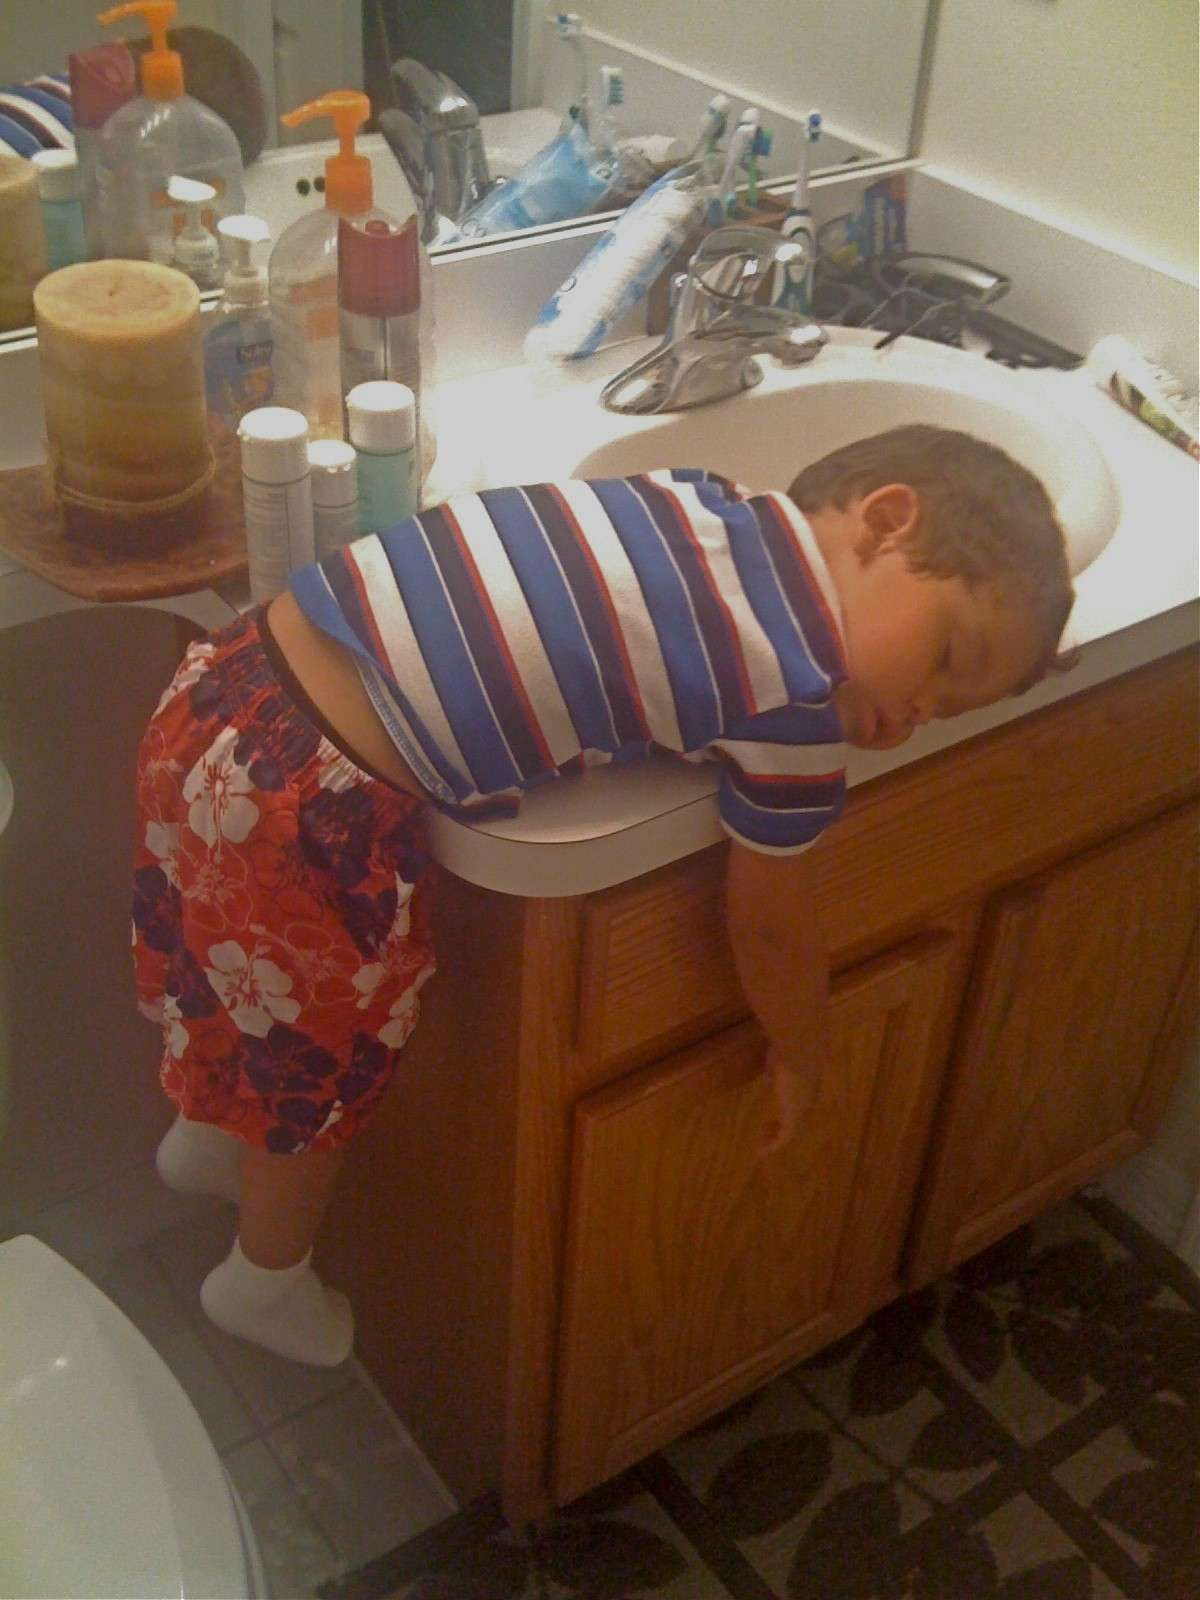 Came In To See Him Totally Asleep. One Arm In The Sink. Water On. Lights Off.